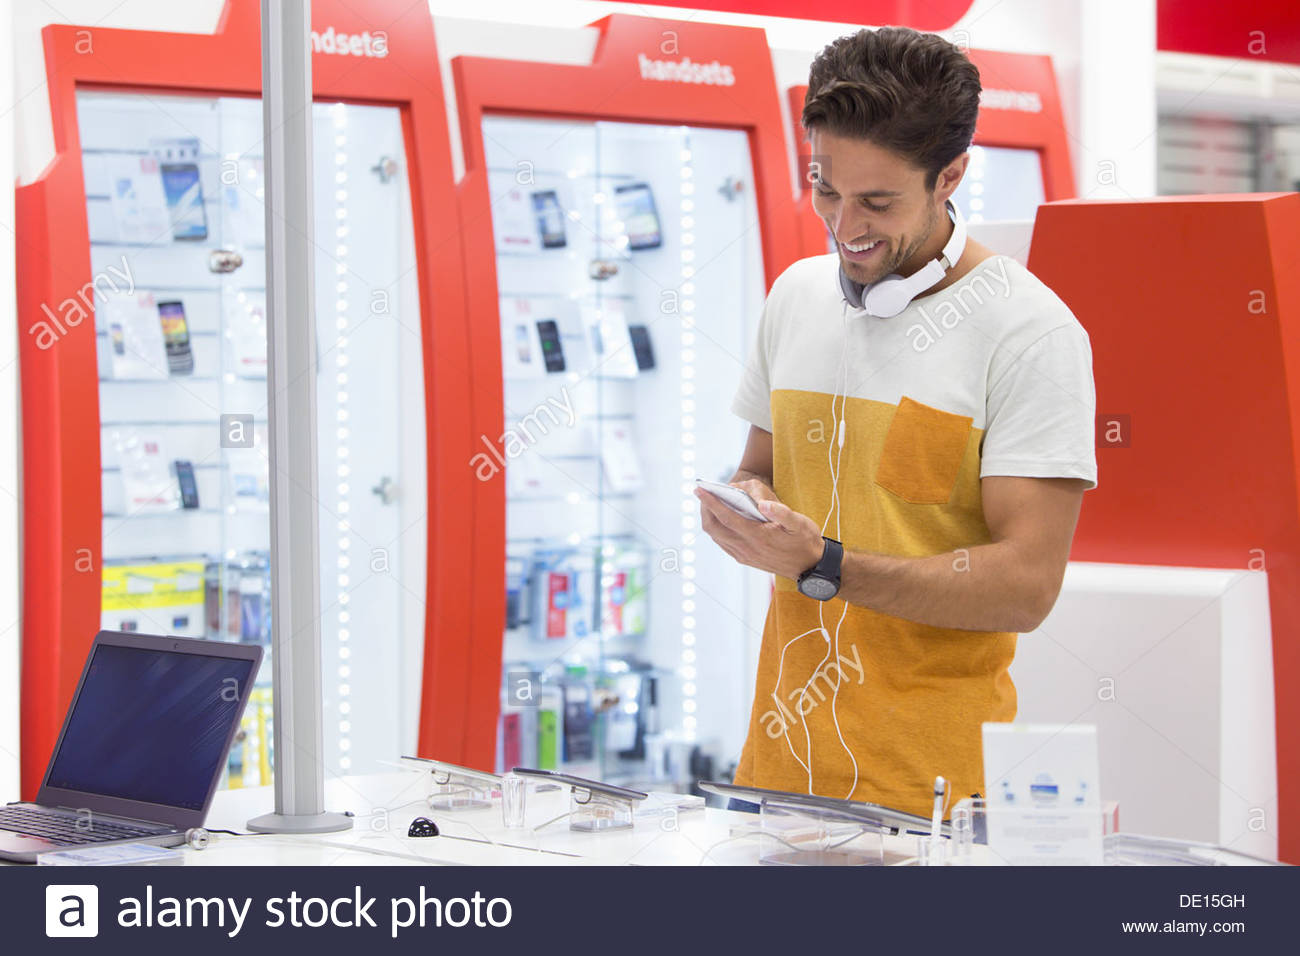 Smiling man looking at cell phone in electronics store - Stock Image